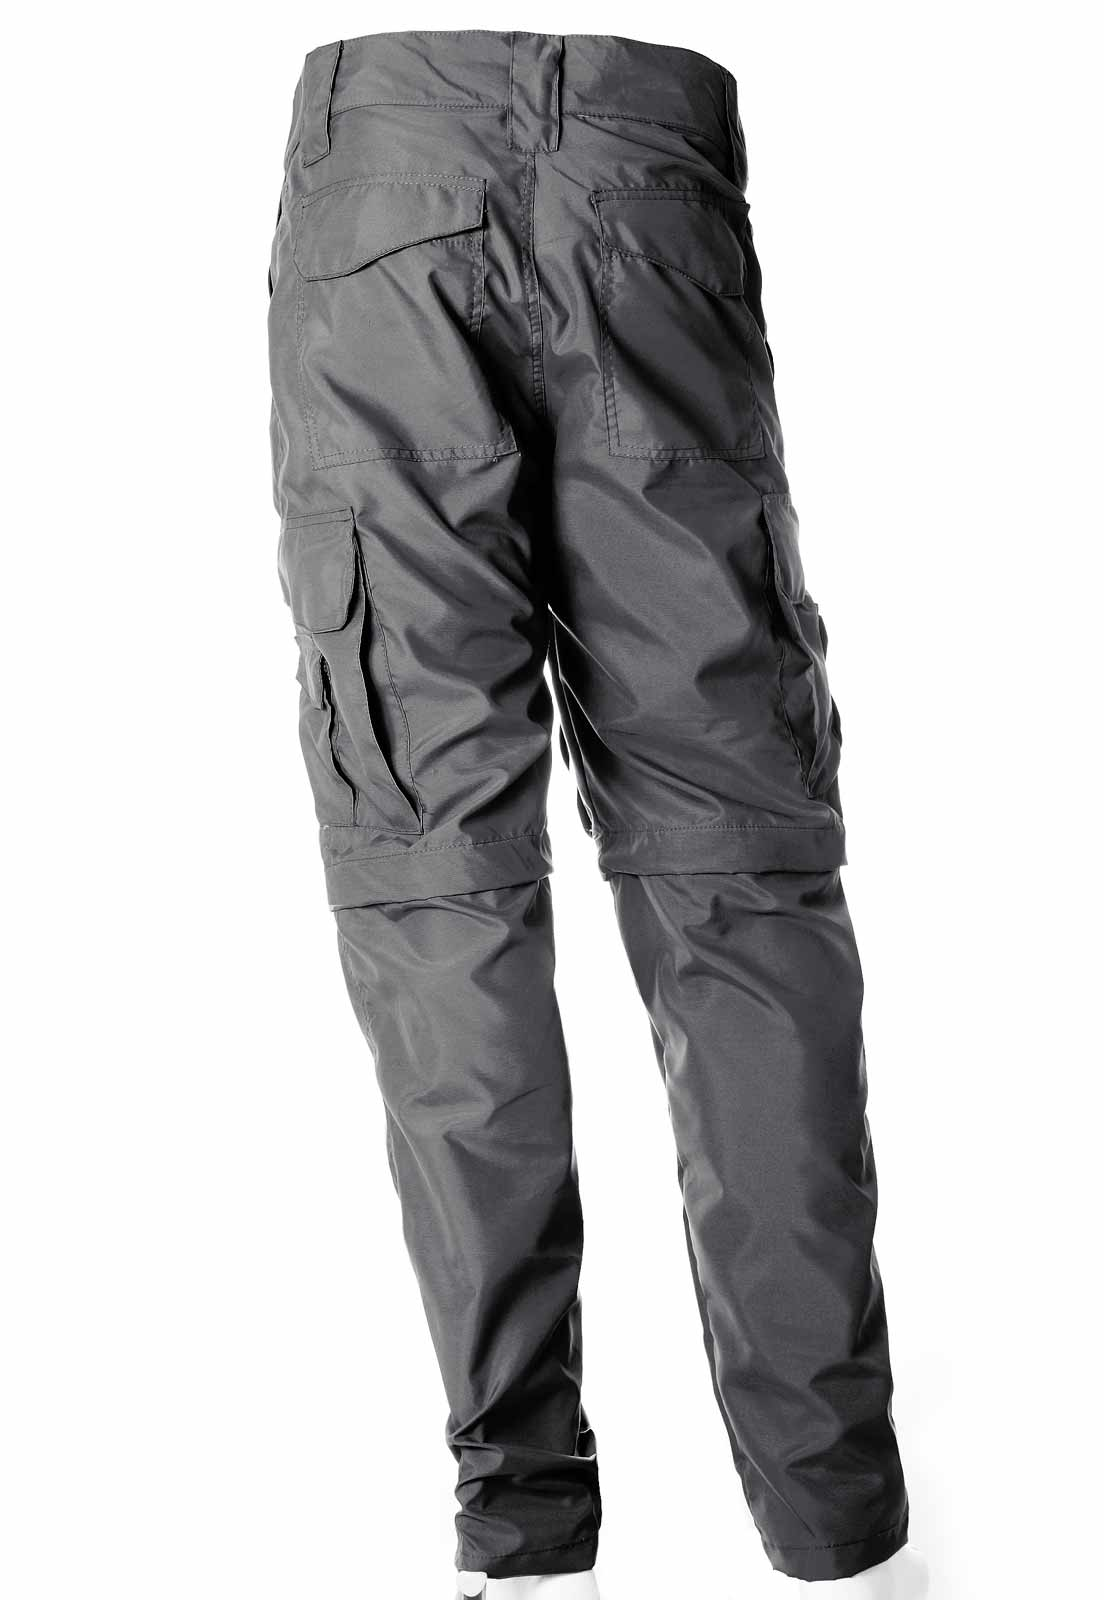 Calça-Bermuda Cores Cinza UltraLight Masculina  - REAL HUNTER OUTDOORS